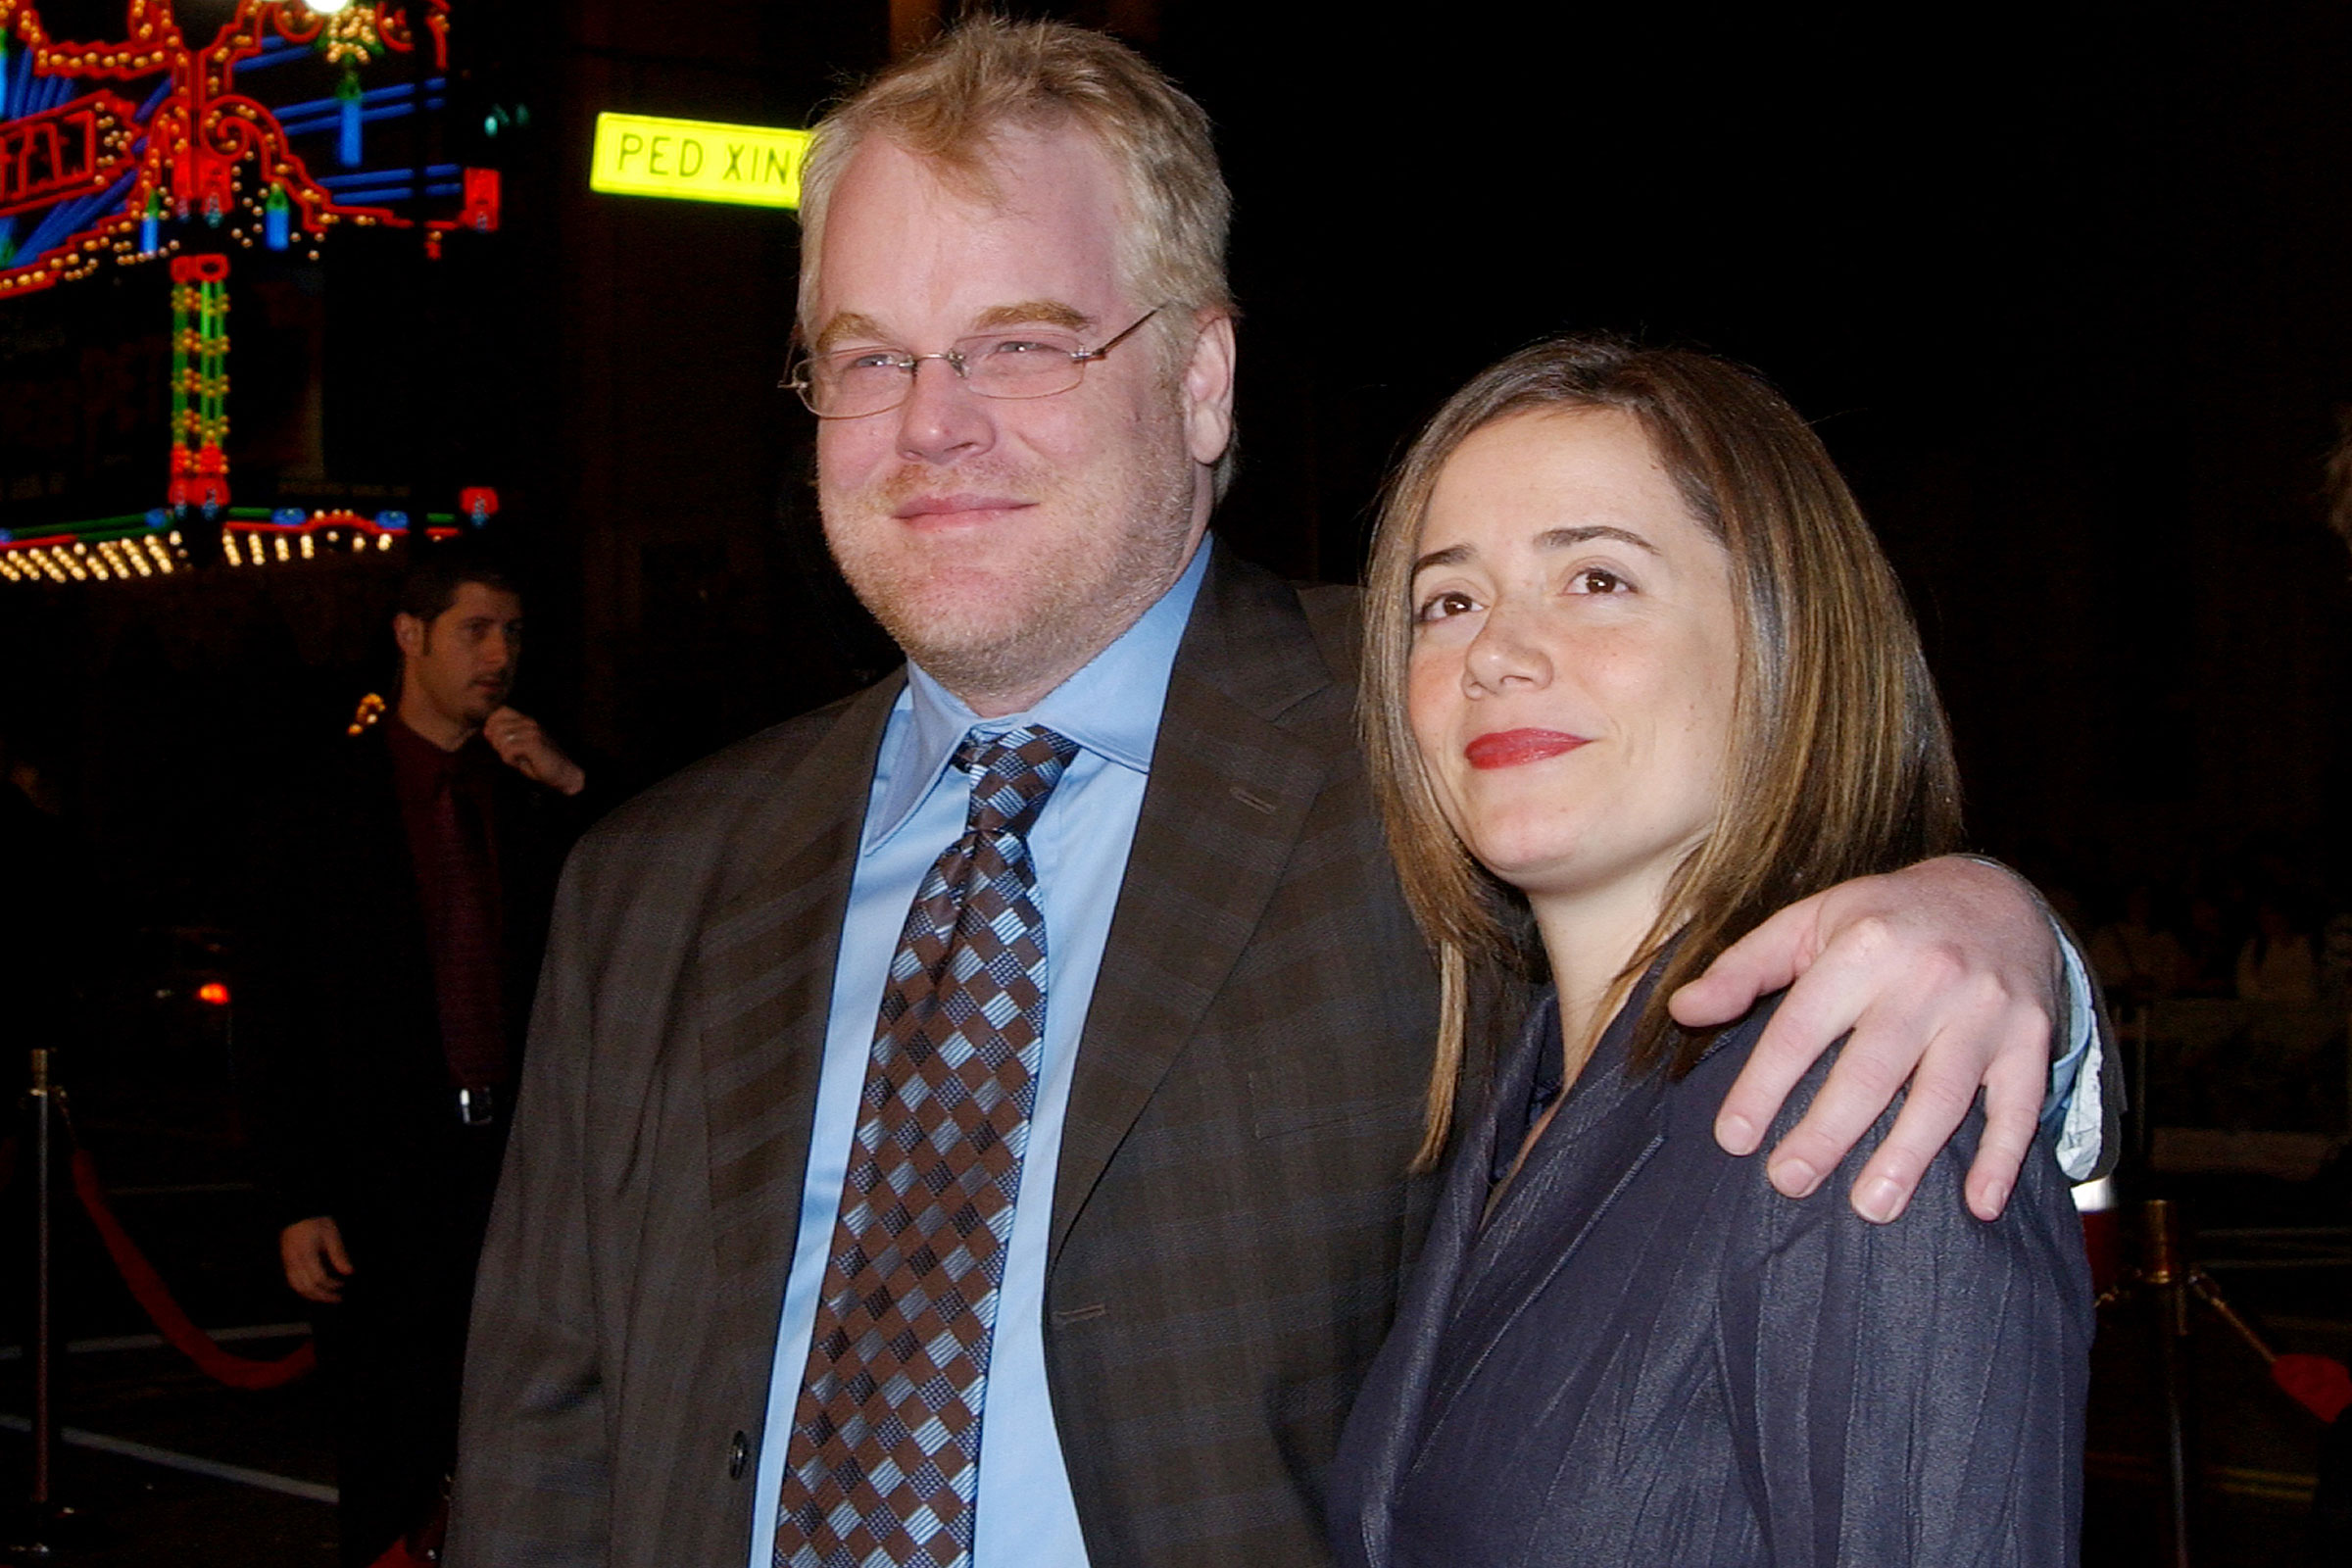 Philip Seymour Hoffman and Mimi O'Donnell at a premiere at Mann's Chinese Theater in Hollywood, California in 2004.